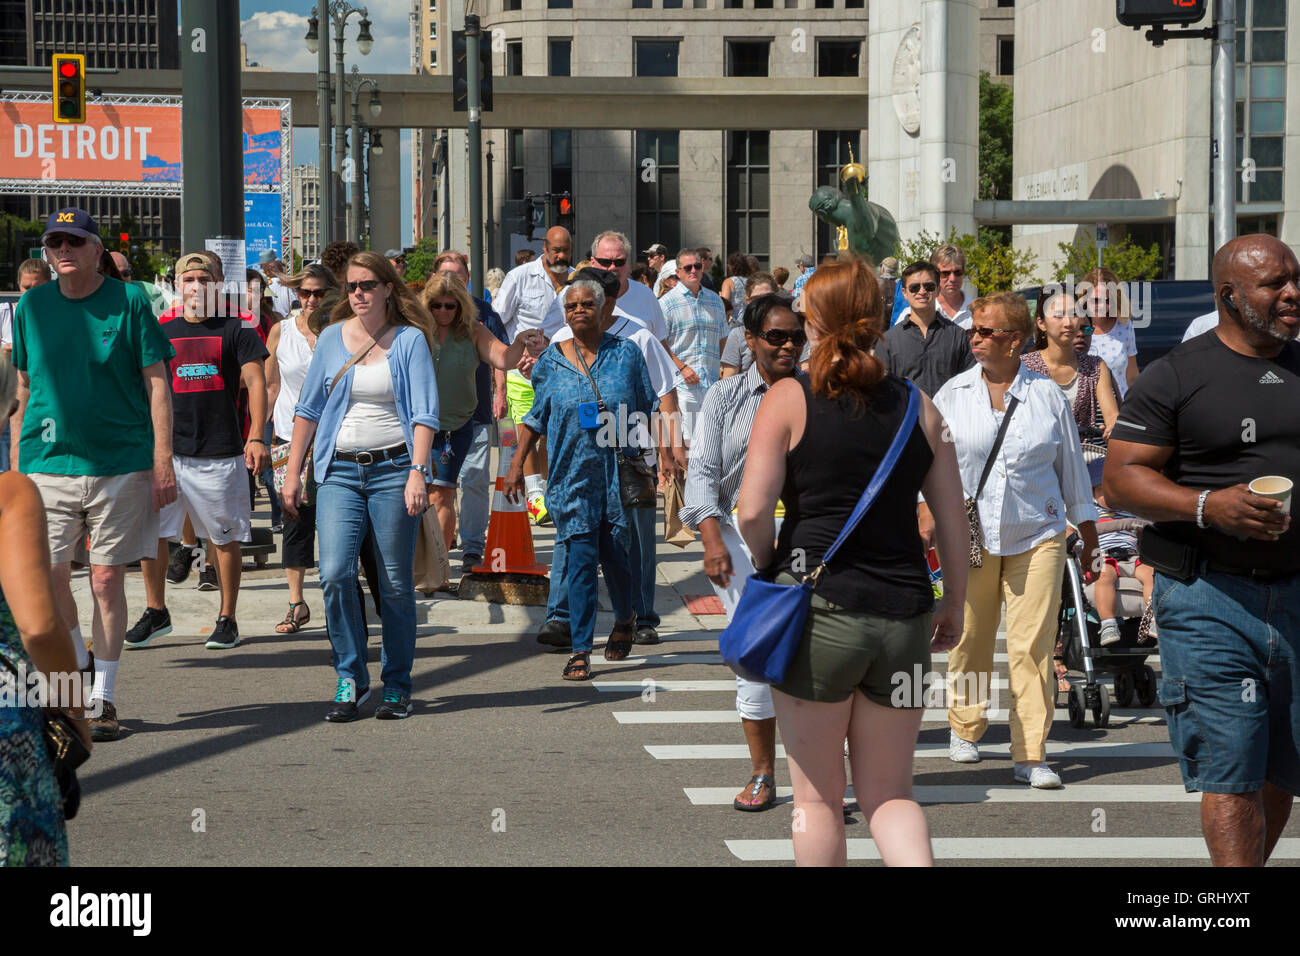 Detroit, Michigan - People cross a street on their way to the Detroit Jazz Festival. - Stock Image